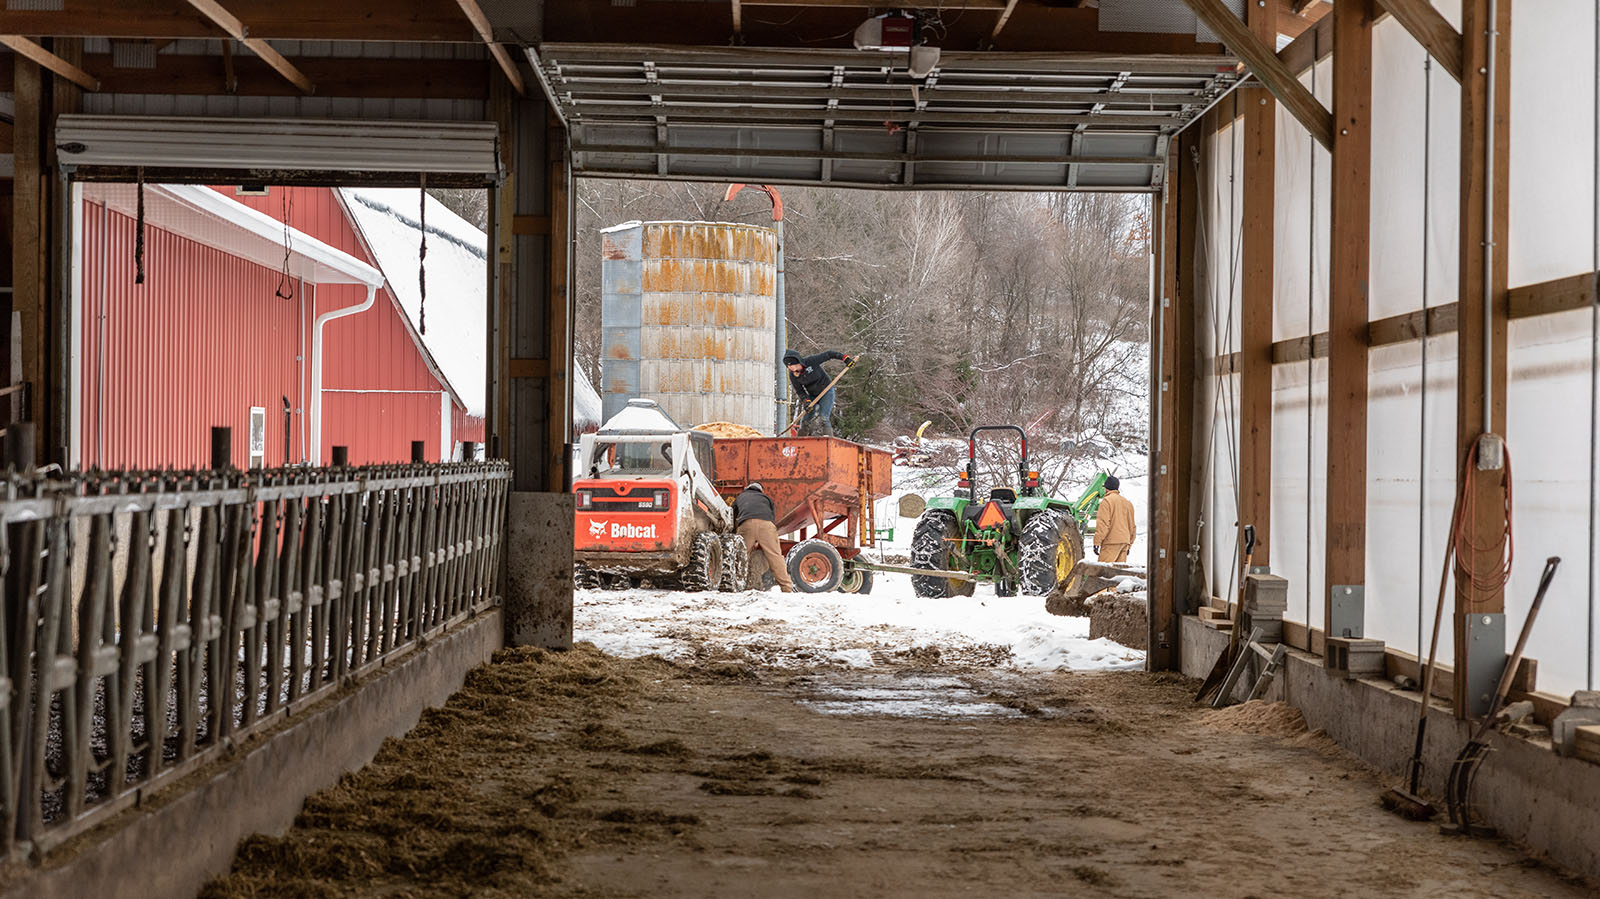 The tractor pulls a trailer closer to the barn.